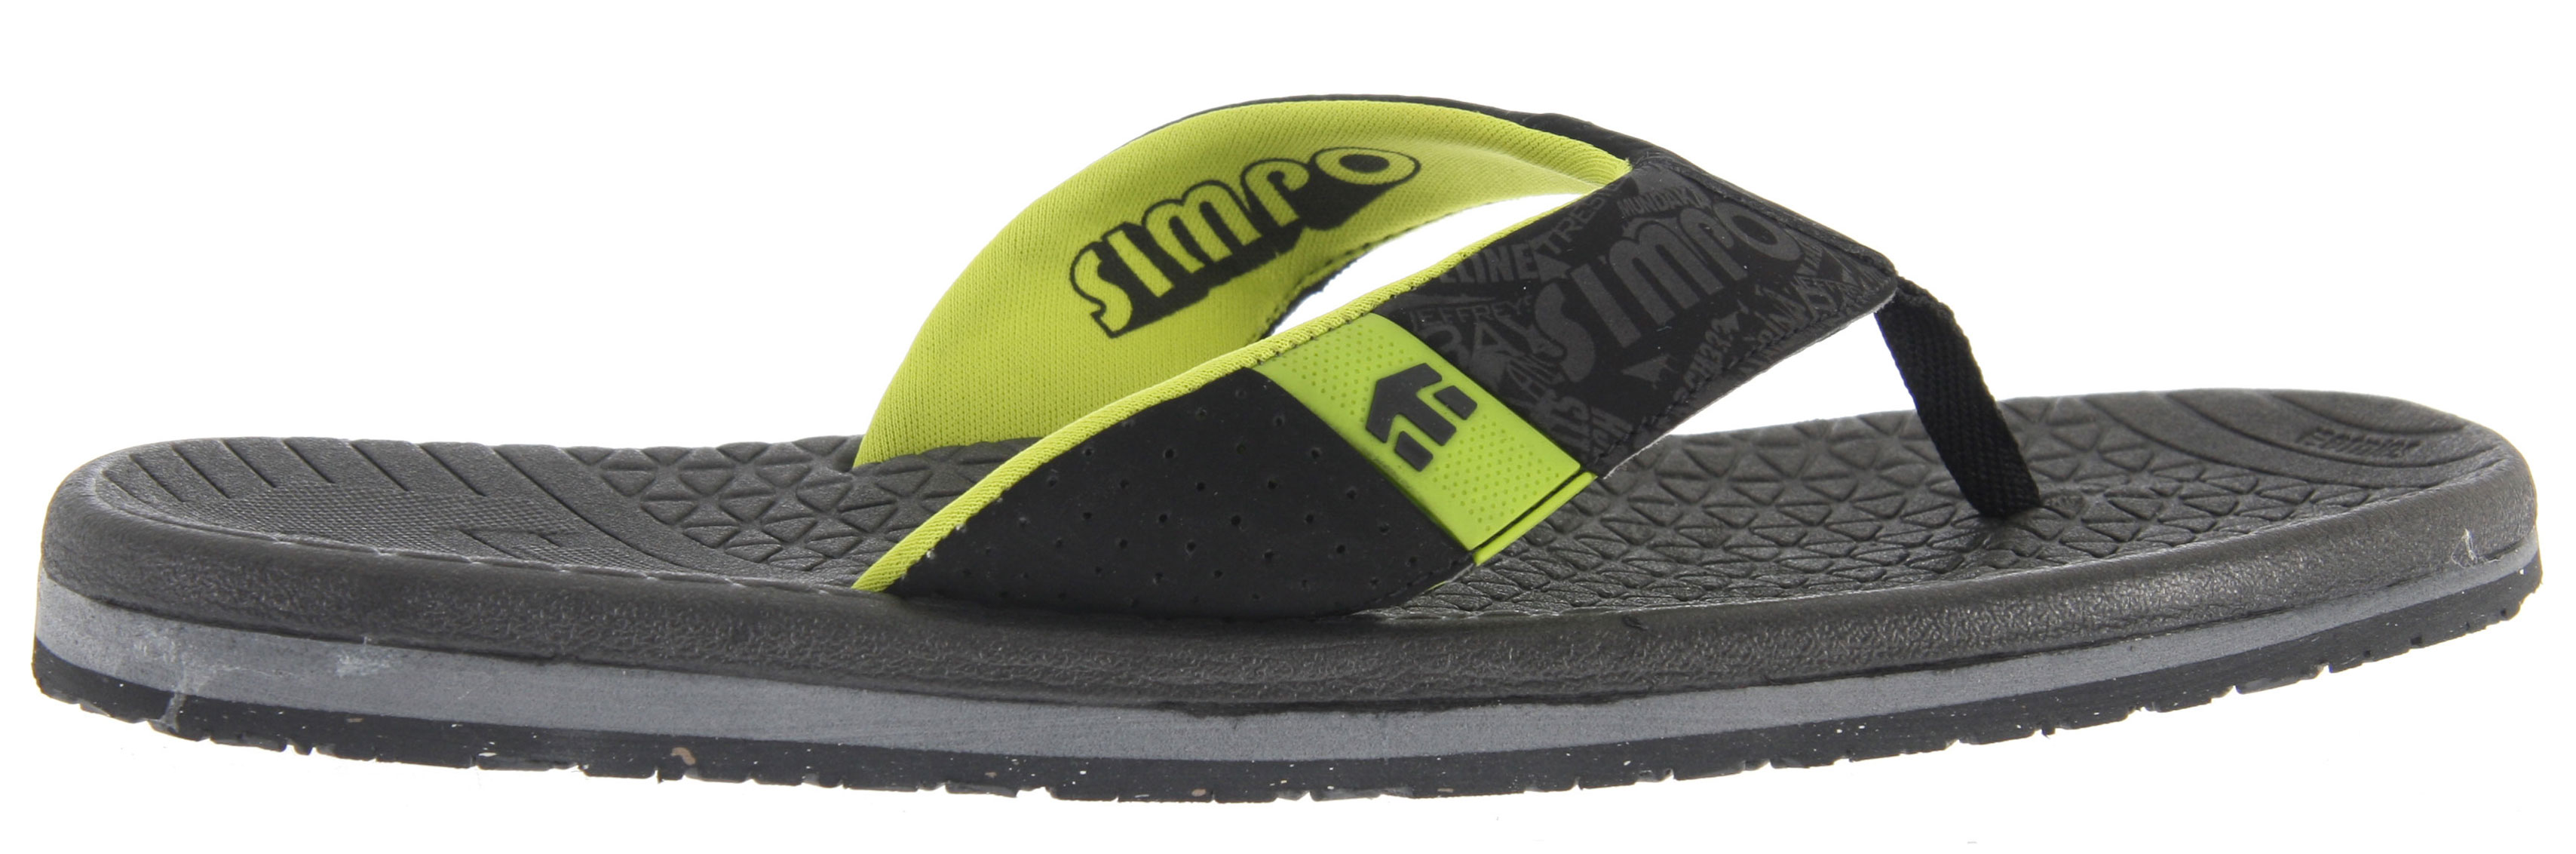 Skateboard The Etnies Dume sandals offer steezy style, quality construction, and lasting performance for all your summer fun. Their EVA footbed maximizes comfort so you feel great wearing them all day, and the eco friendly neoprene lining keeps your feet dry and fresh. TPR logo detailing shows off your Etnies style, and the durable rubber outsole can take a beating over rough terrain. Look great from the beach to the lake and get Etnies fashion and quality with their Dume sandals.Key Features of the Etnies Dume Sandals:  Contoured EVA footbed providing maximum comfort  TPR logo detailing  Soft eco-friendly neoprene lining  Rubber outsole - $24.95